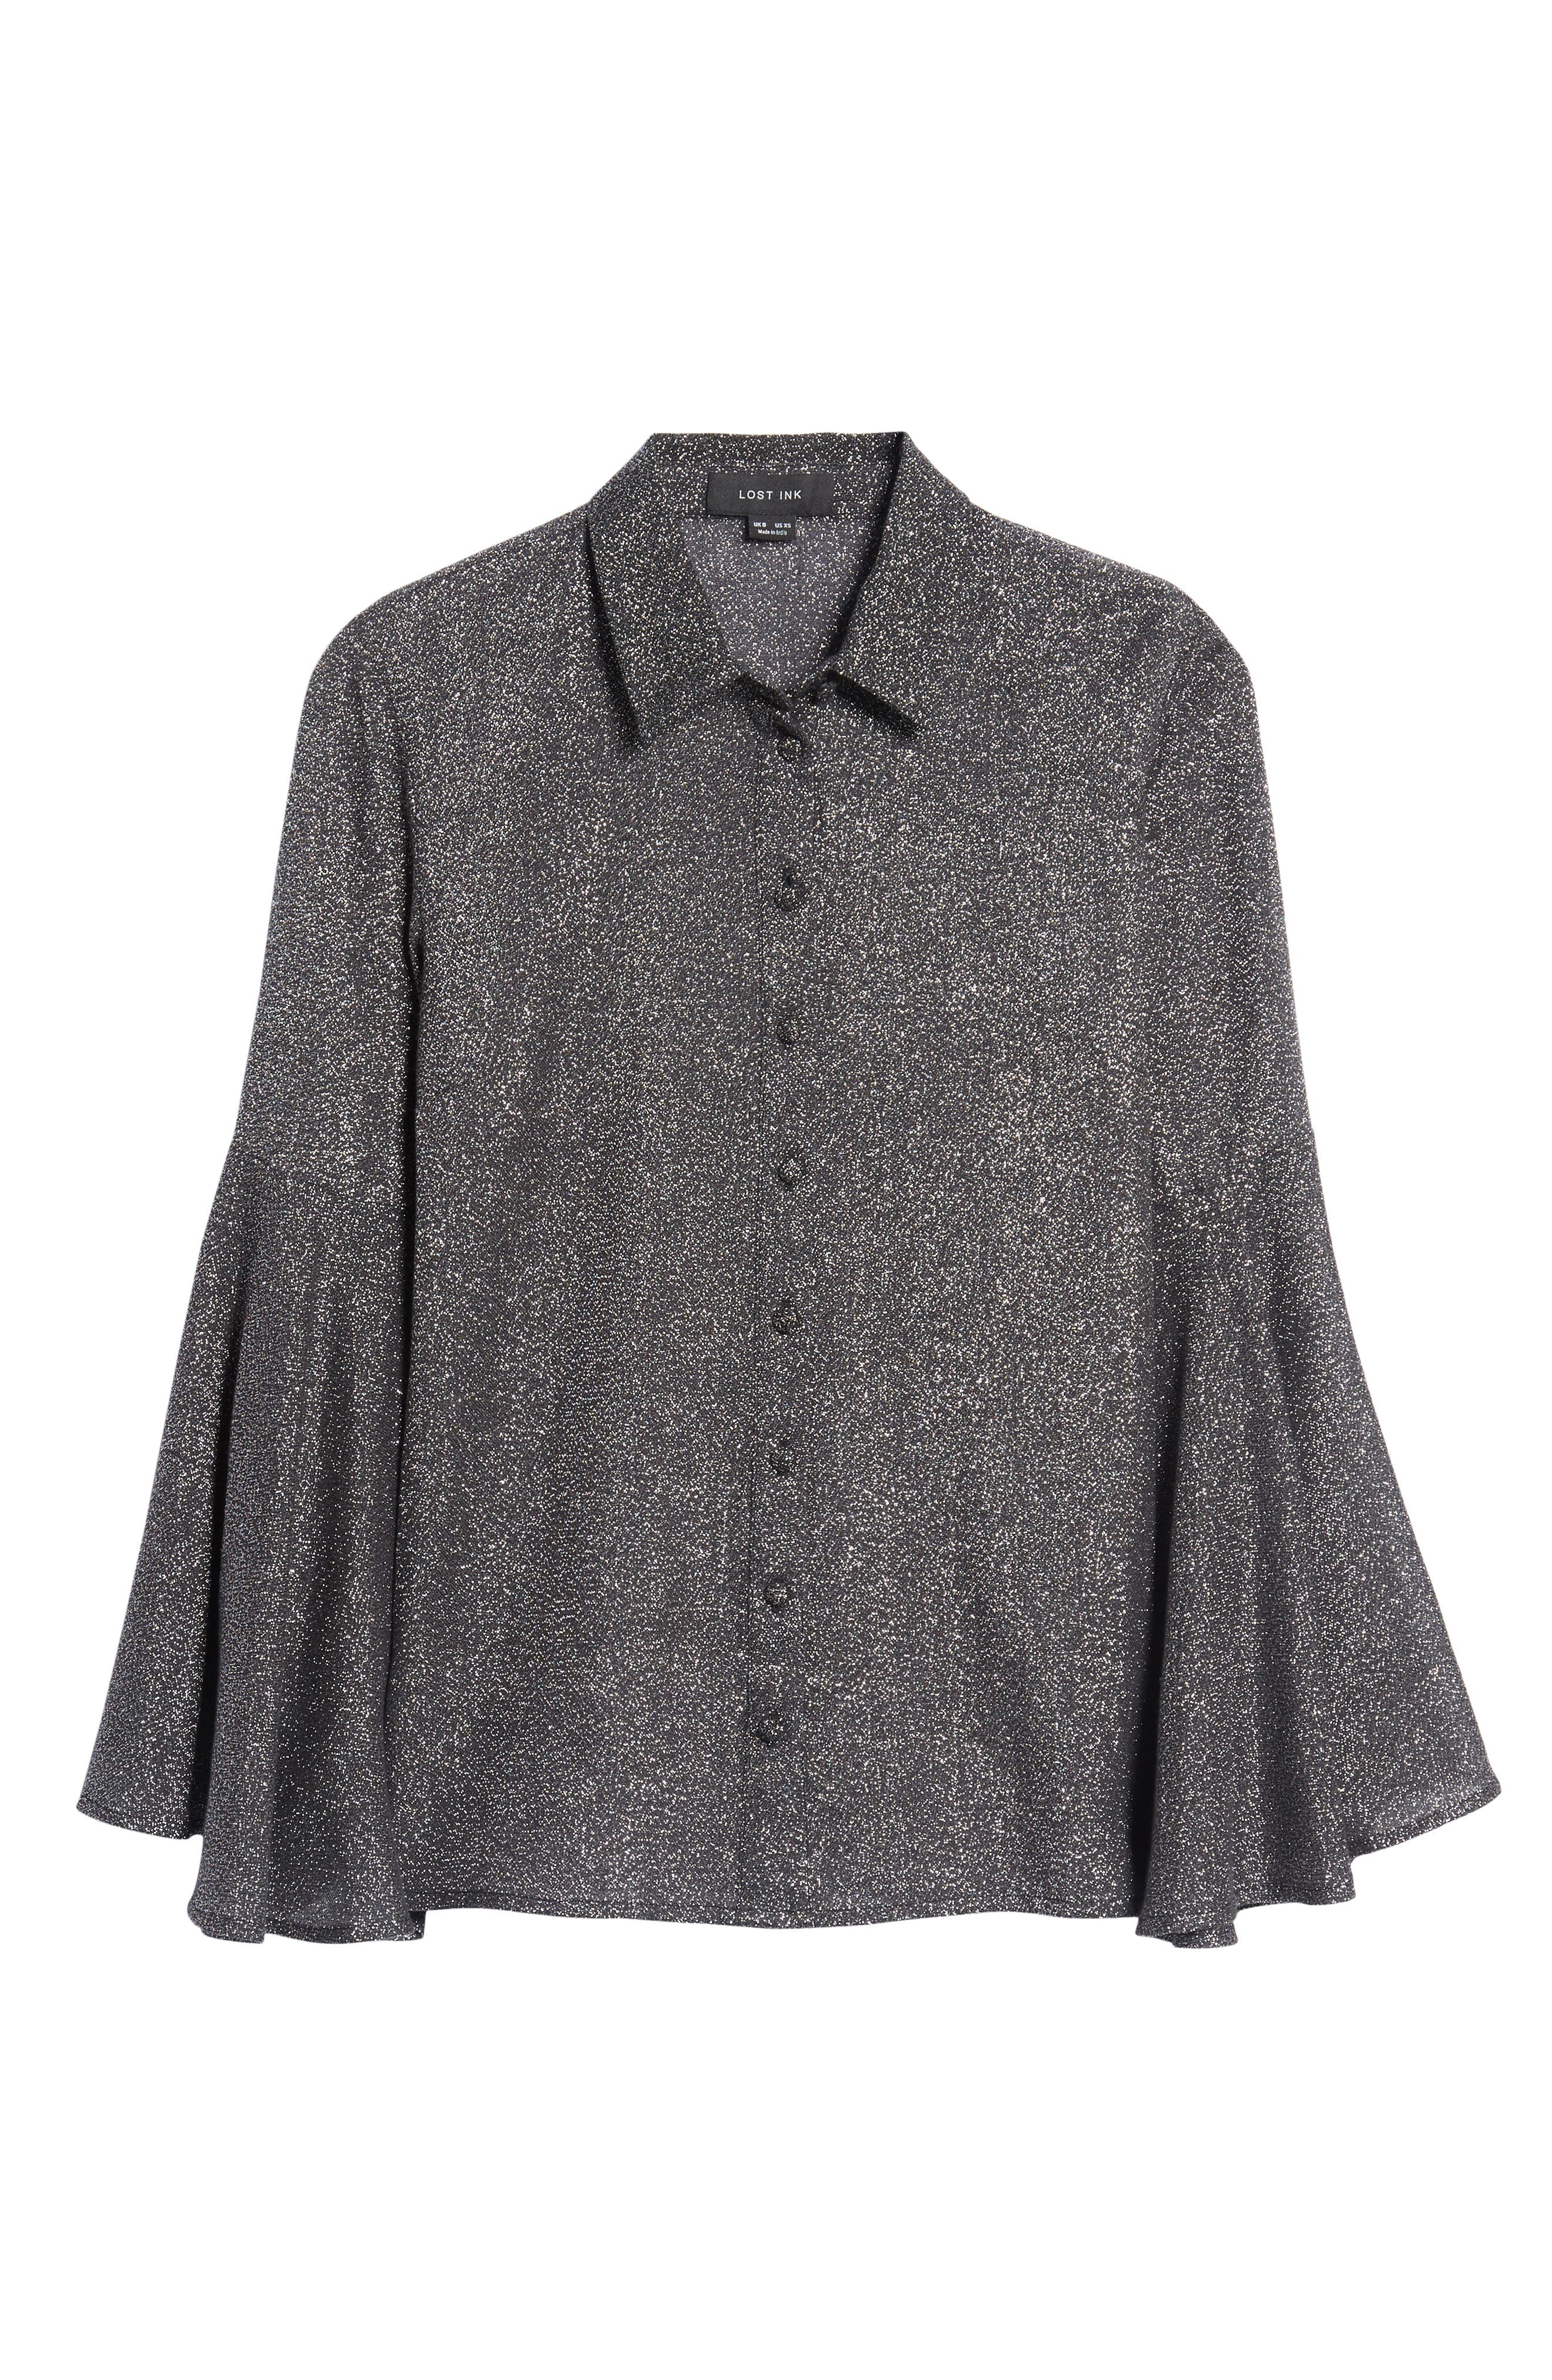 Alternate Image 7  - LOST INK Sparkly Bell Sleeve Shirt